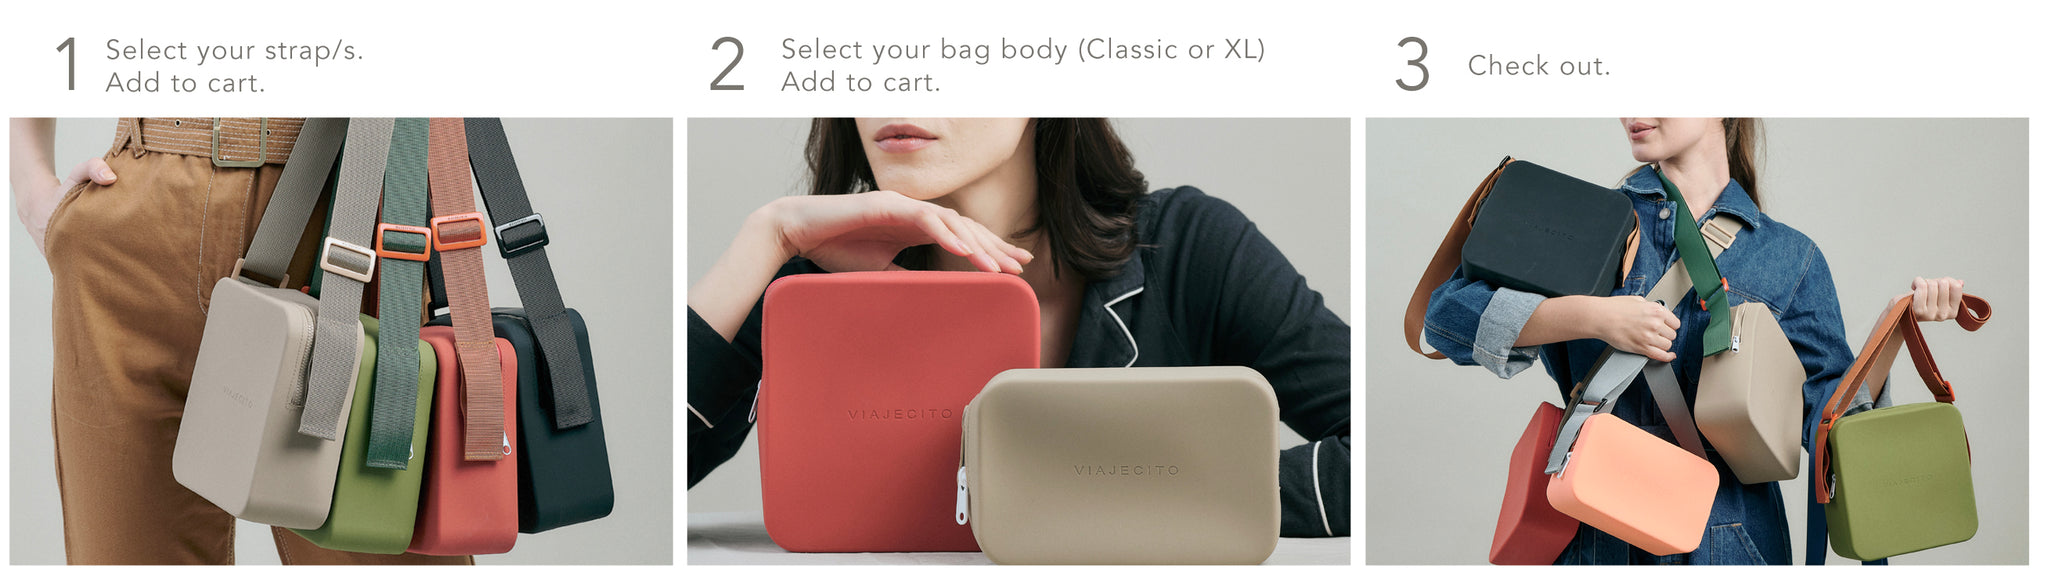 1.) Select your strap/s, 2.) Select your bag body, 3.) Check out